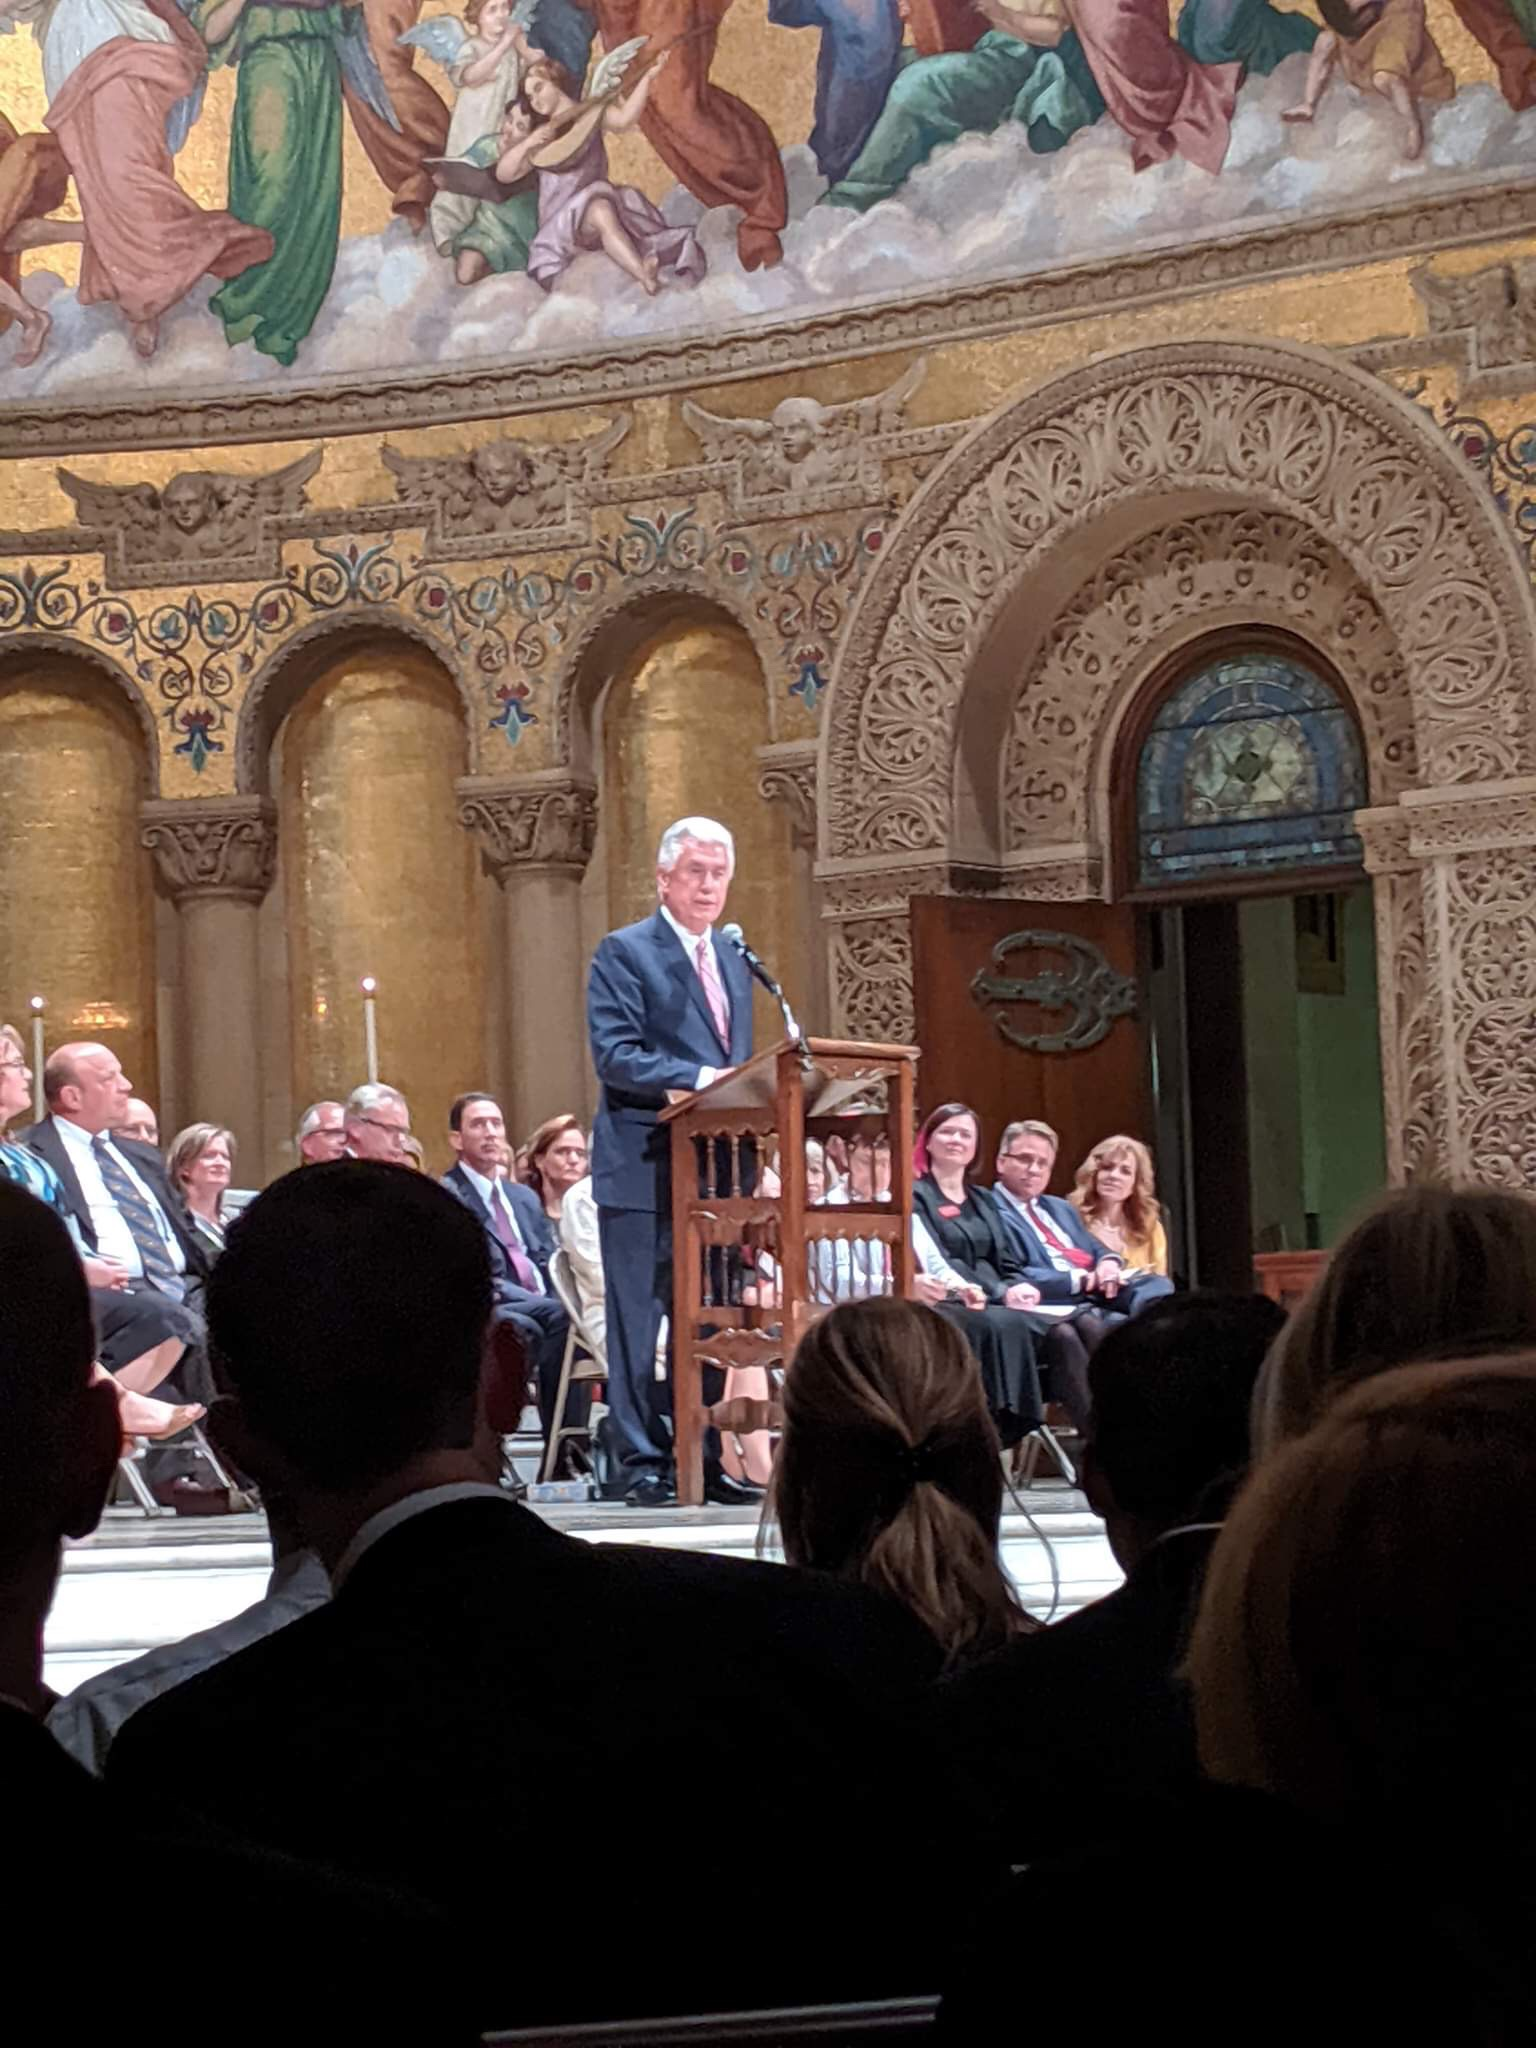 Elder Dieter F. Uchtdorf speaks to young adults during a devotional at the Stanford Memorial Church on Oct. 27, 2019.